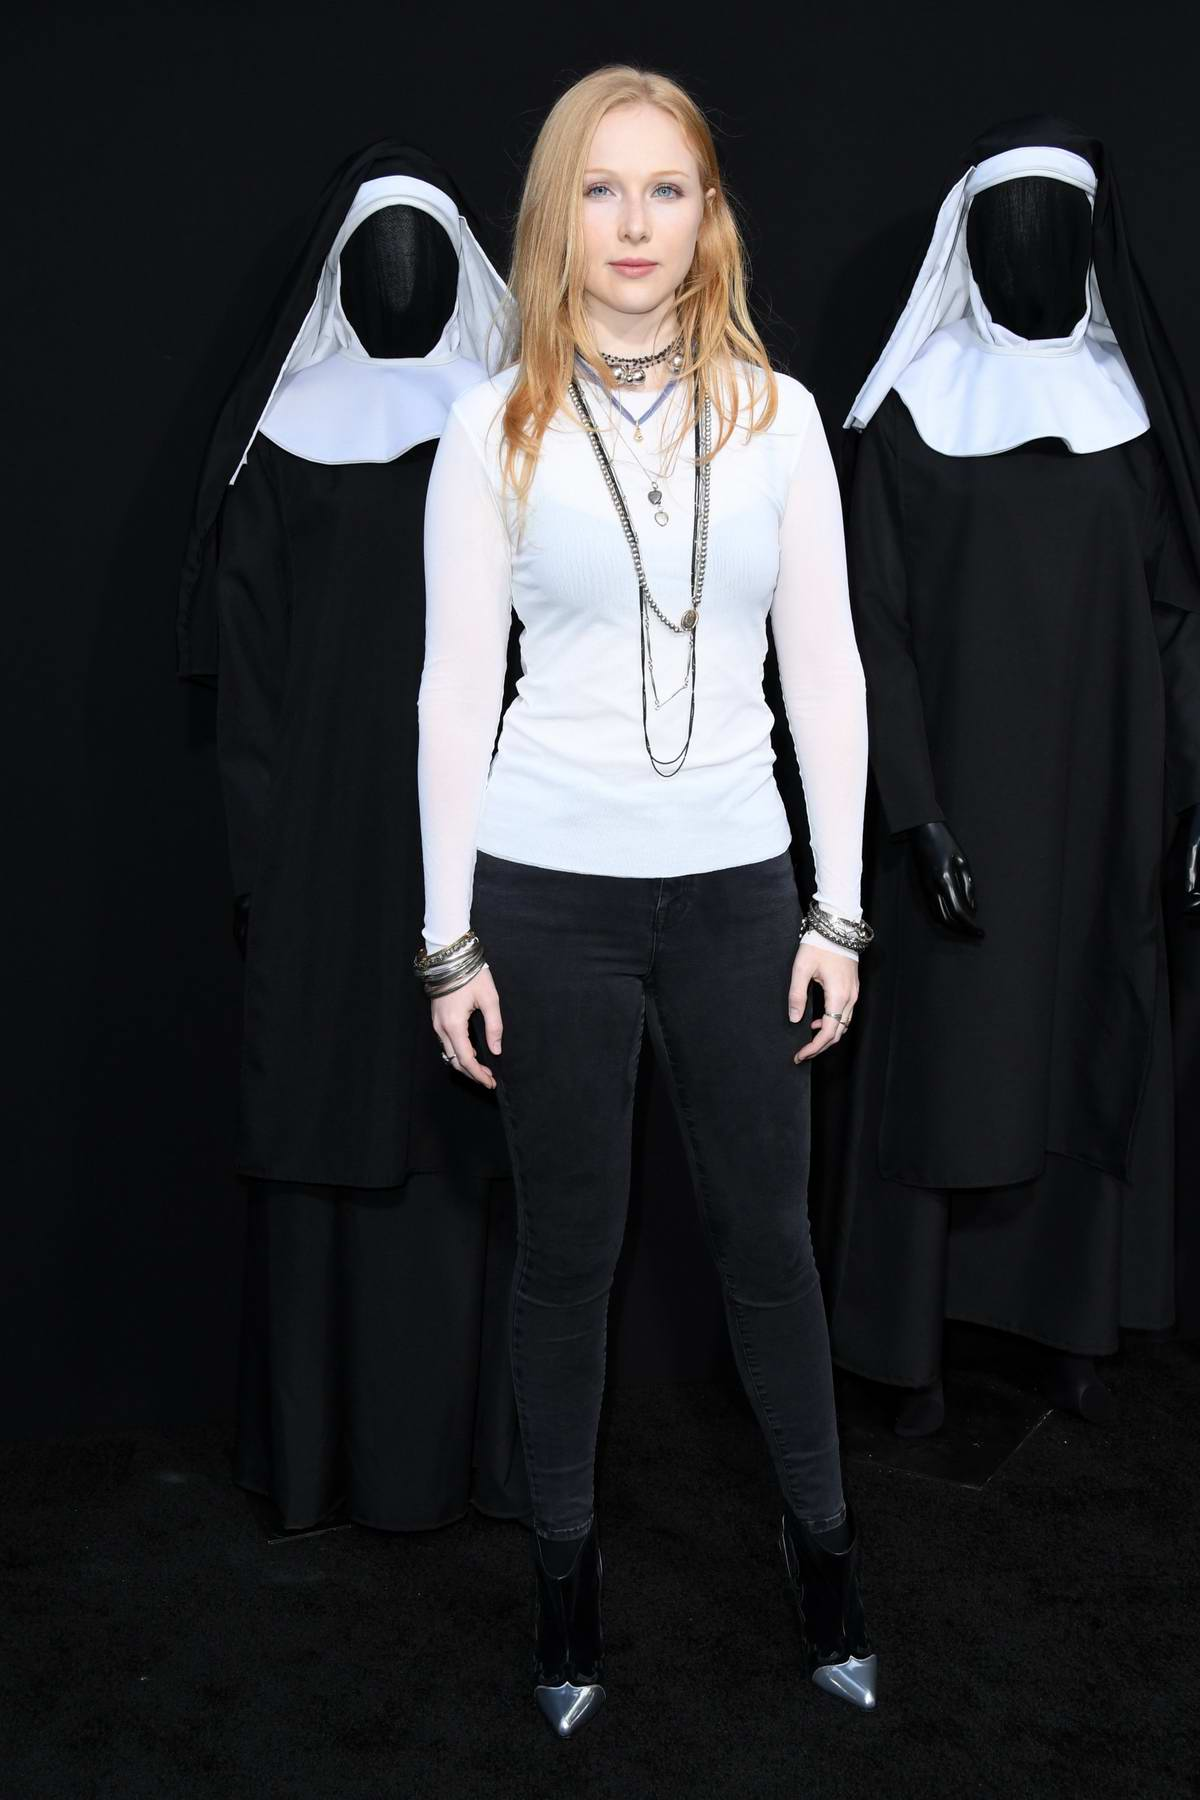 Molly Quinn attends 'The Nun' film premiere at TCL Chinese Theatre in Hollywood, Los Angeles